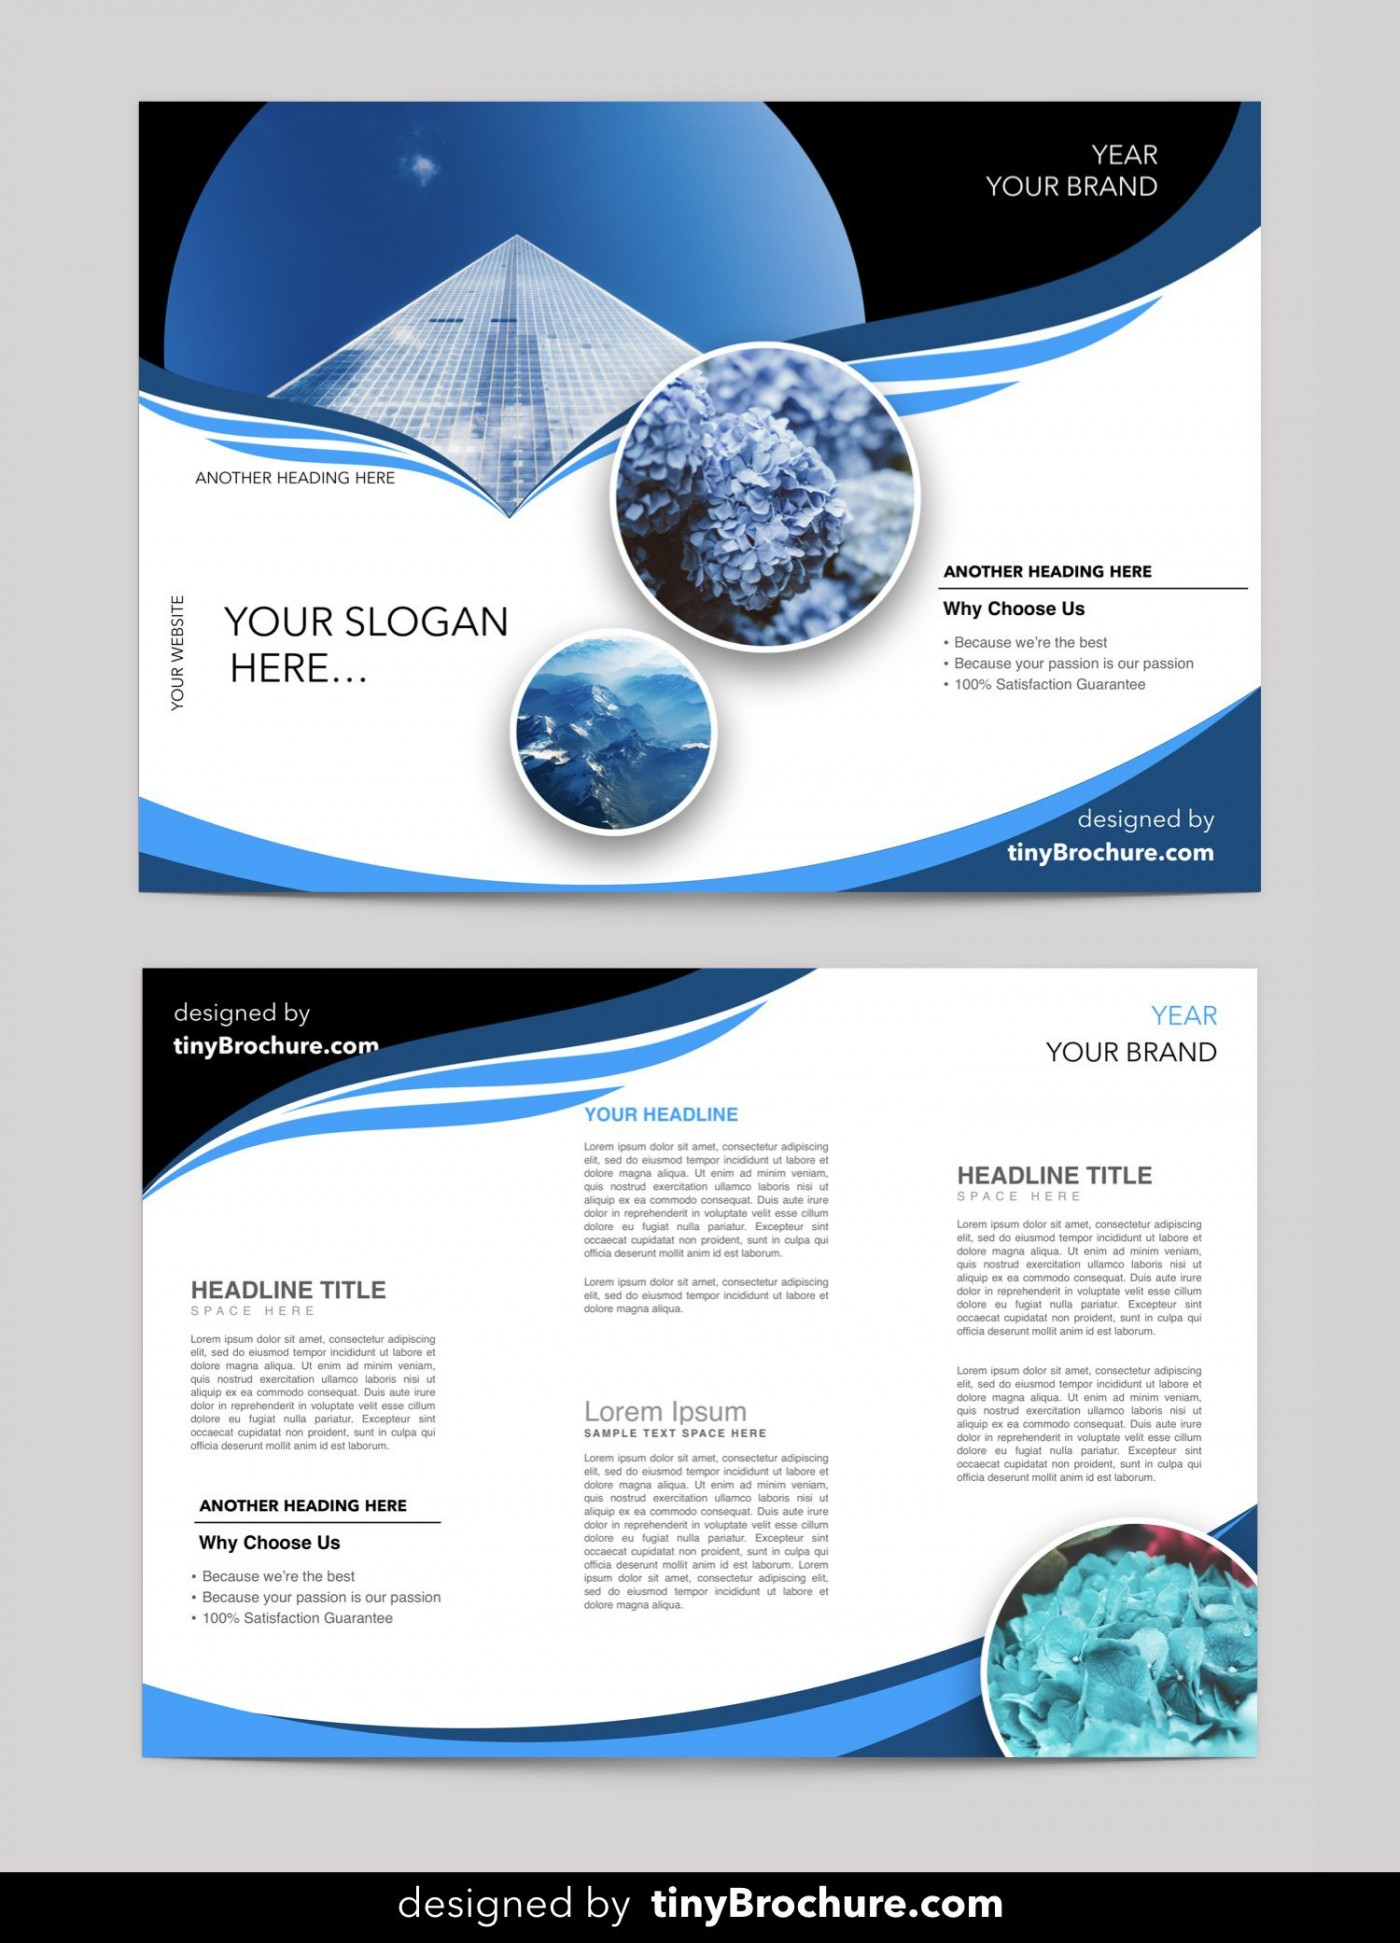 003 Phenomenal Busines Flyer Template Free Download Concept  Photoshop Training Design1400